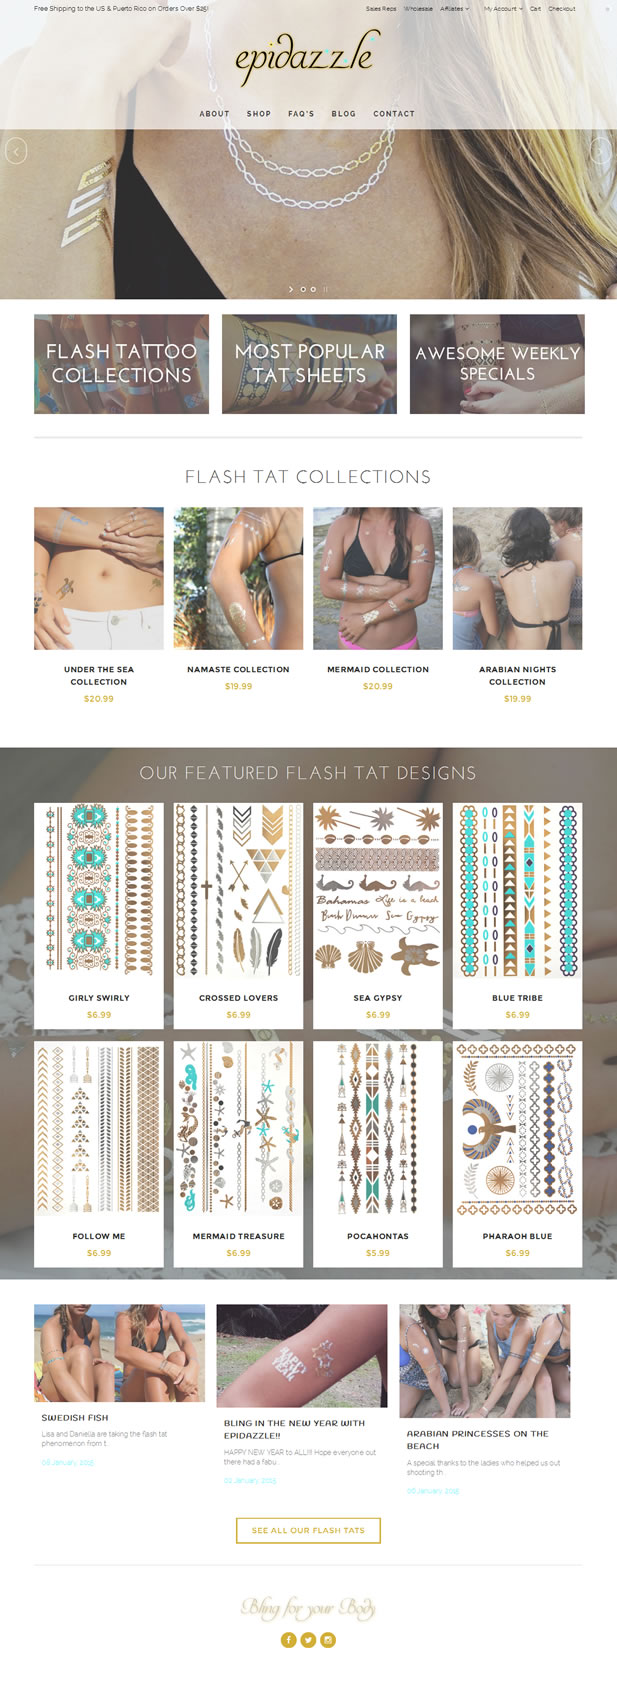 Epidazzle Flash Tattoos